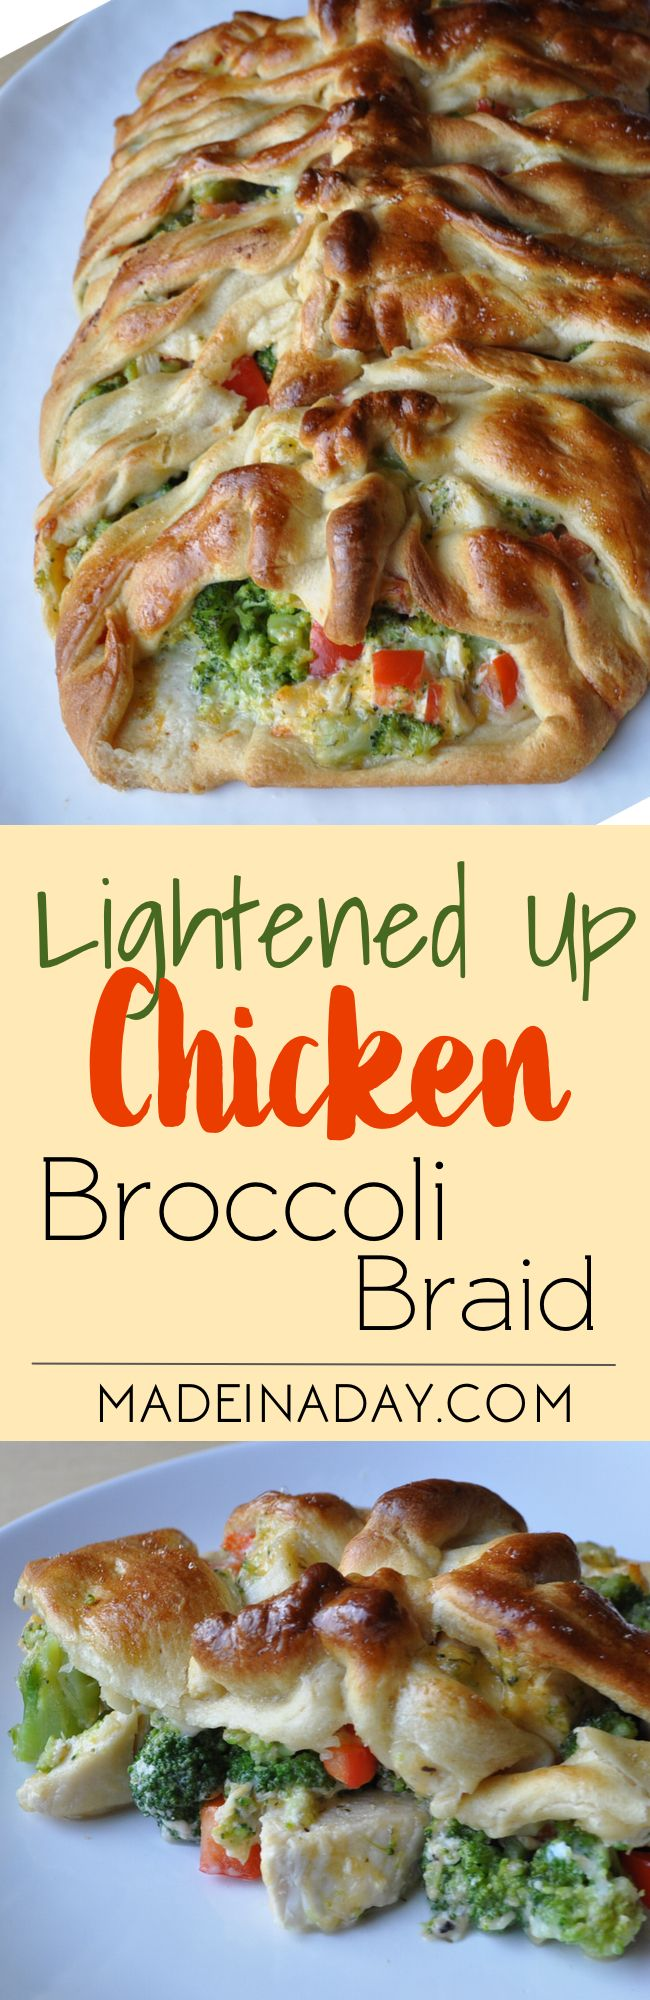 Lightened Up Version of the Ever Popular Chicken Broccoli Braid Recipe! Who doesn't love Pampered Chefs Braid recipes? Well my husband doesn't love mayo so we had to change the recipe up a bit! See what we did to make this fav a little more healthier!